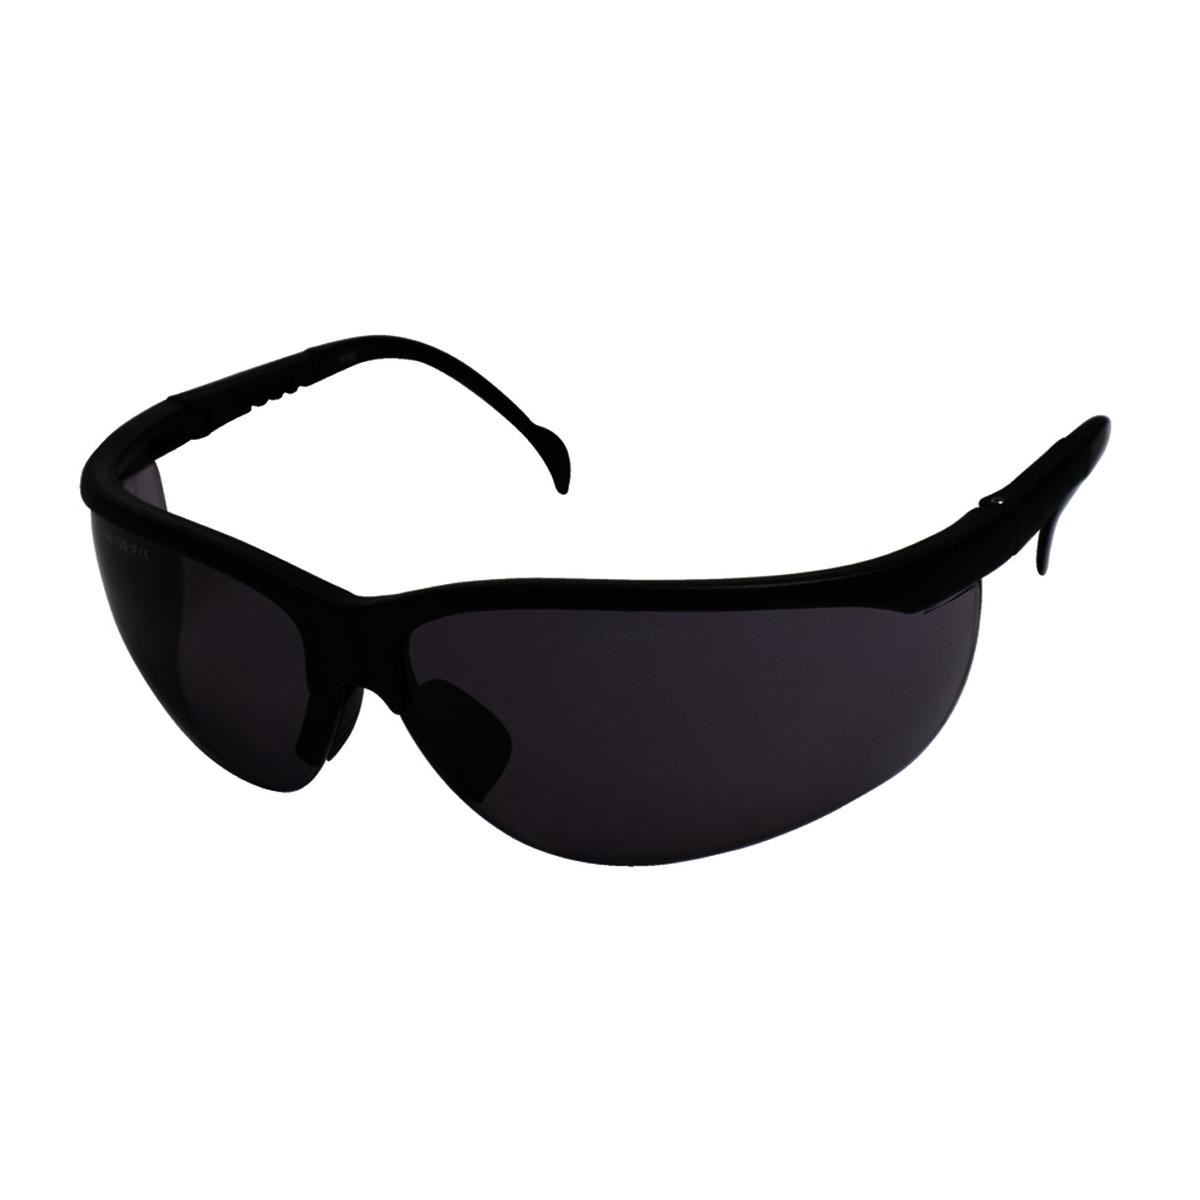 Picture of Antifog Black Safety Glasses with Adjustable Sides